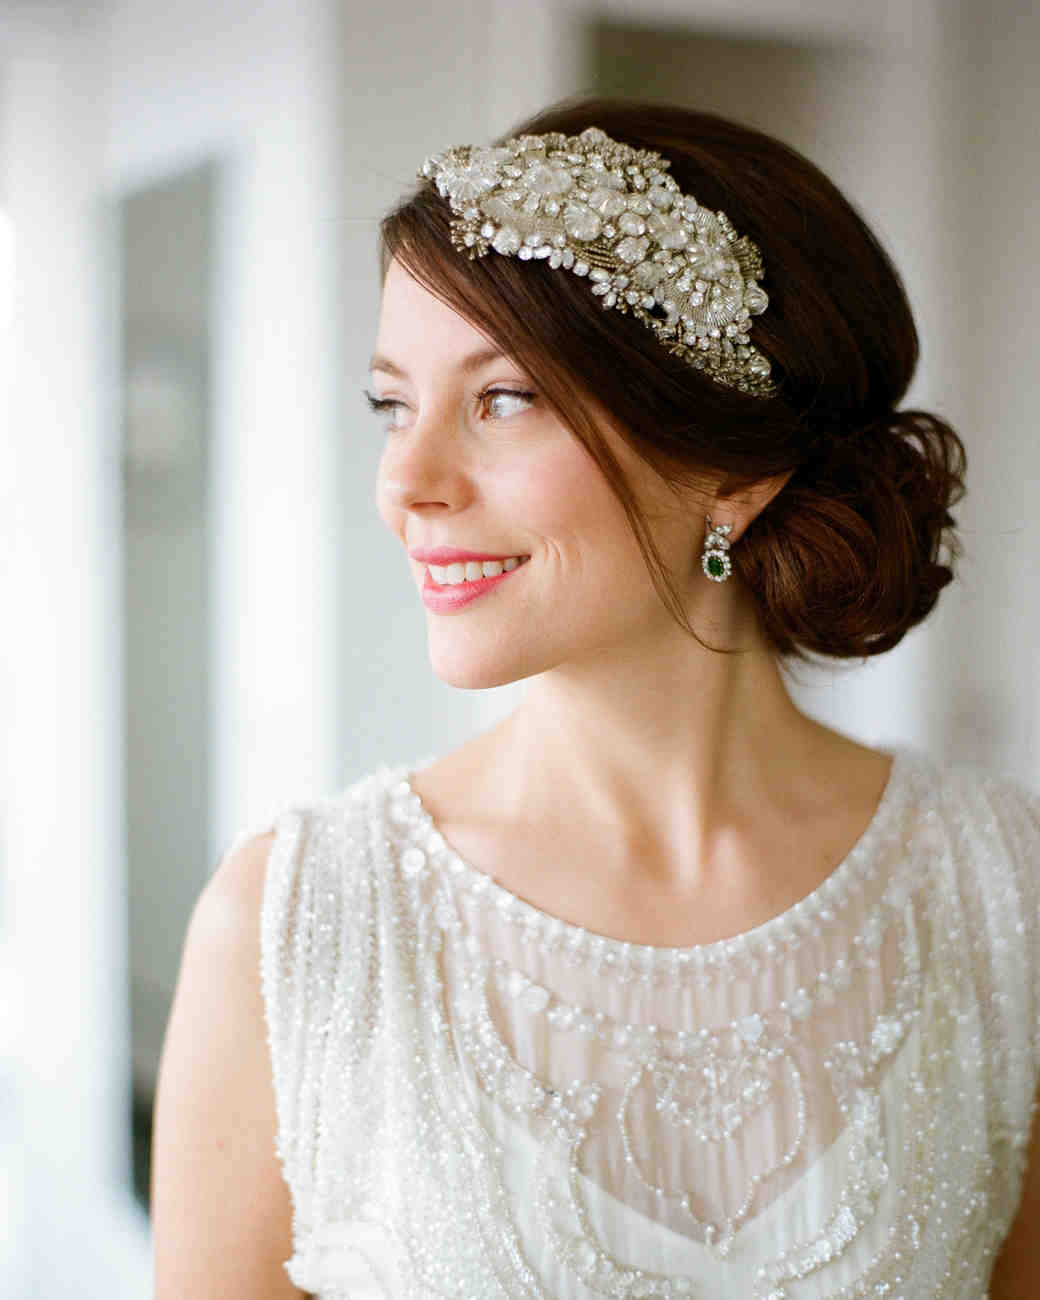 29 Cool Wedding Hairstyles for the Modern Bride | Martha ...